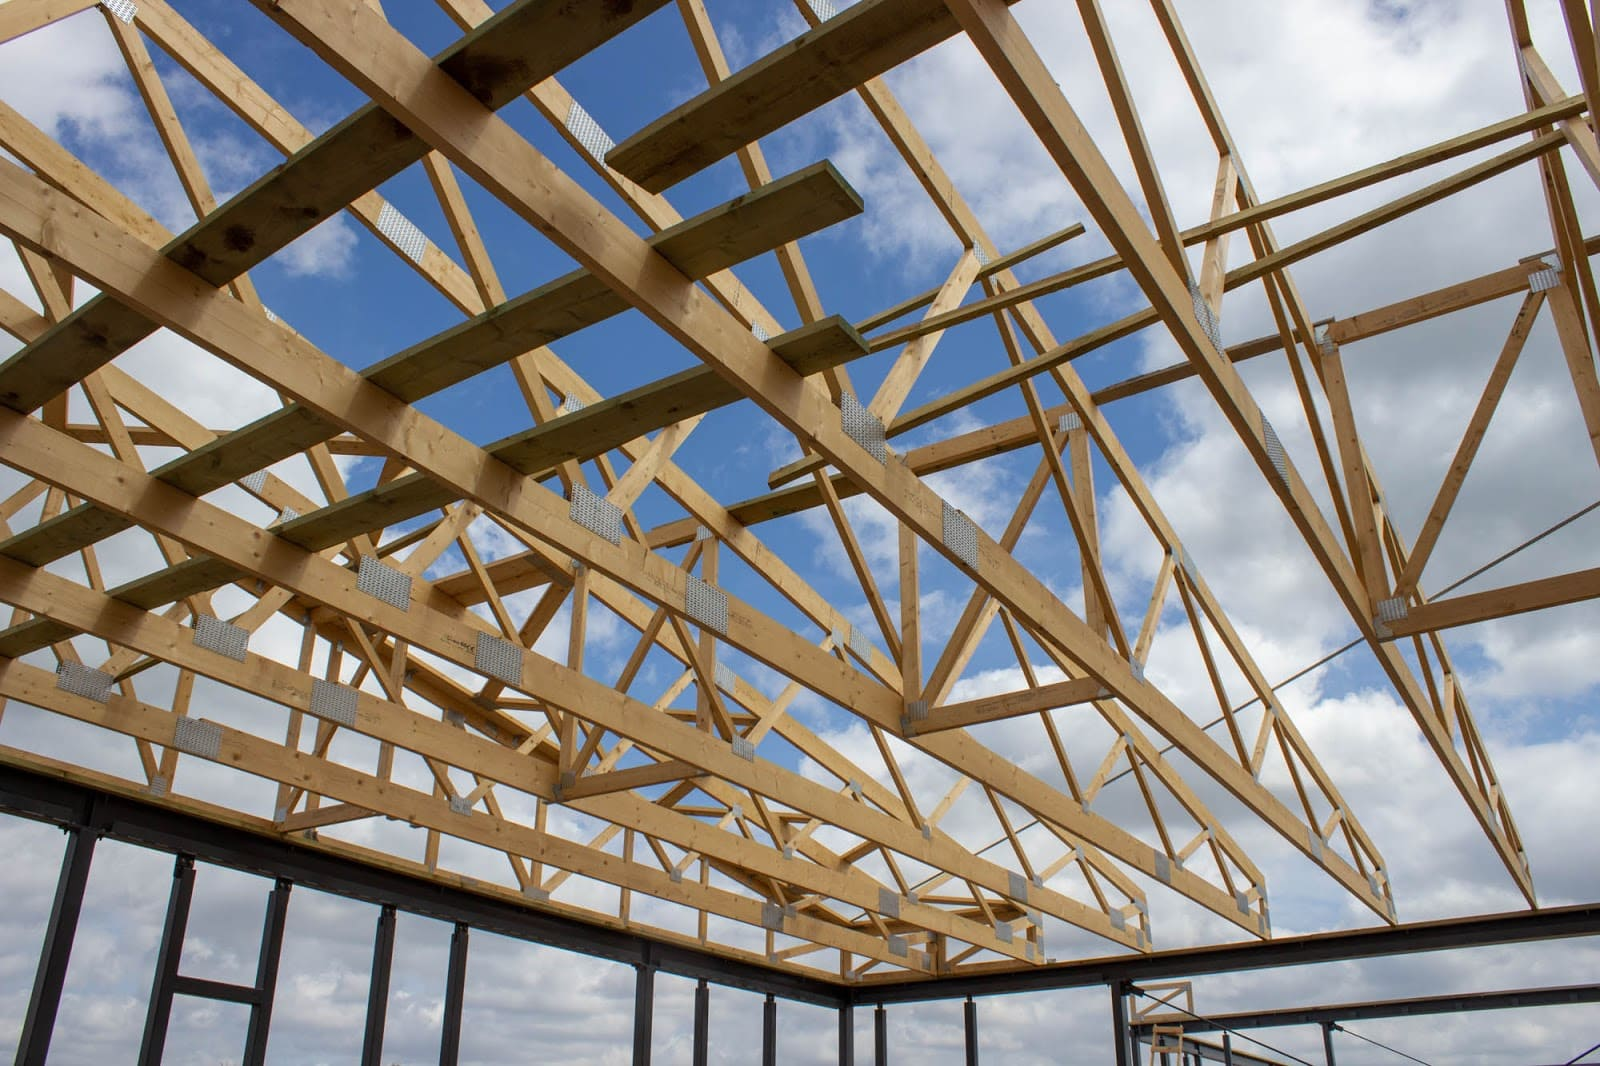 Roof trusses for an agricultural building for rabbits